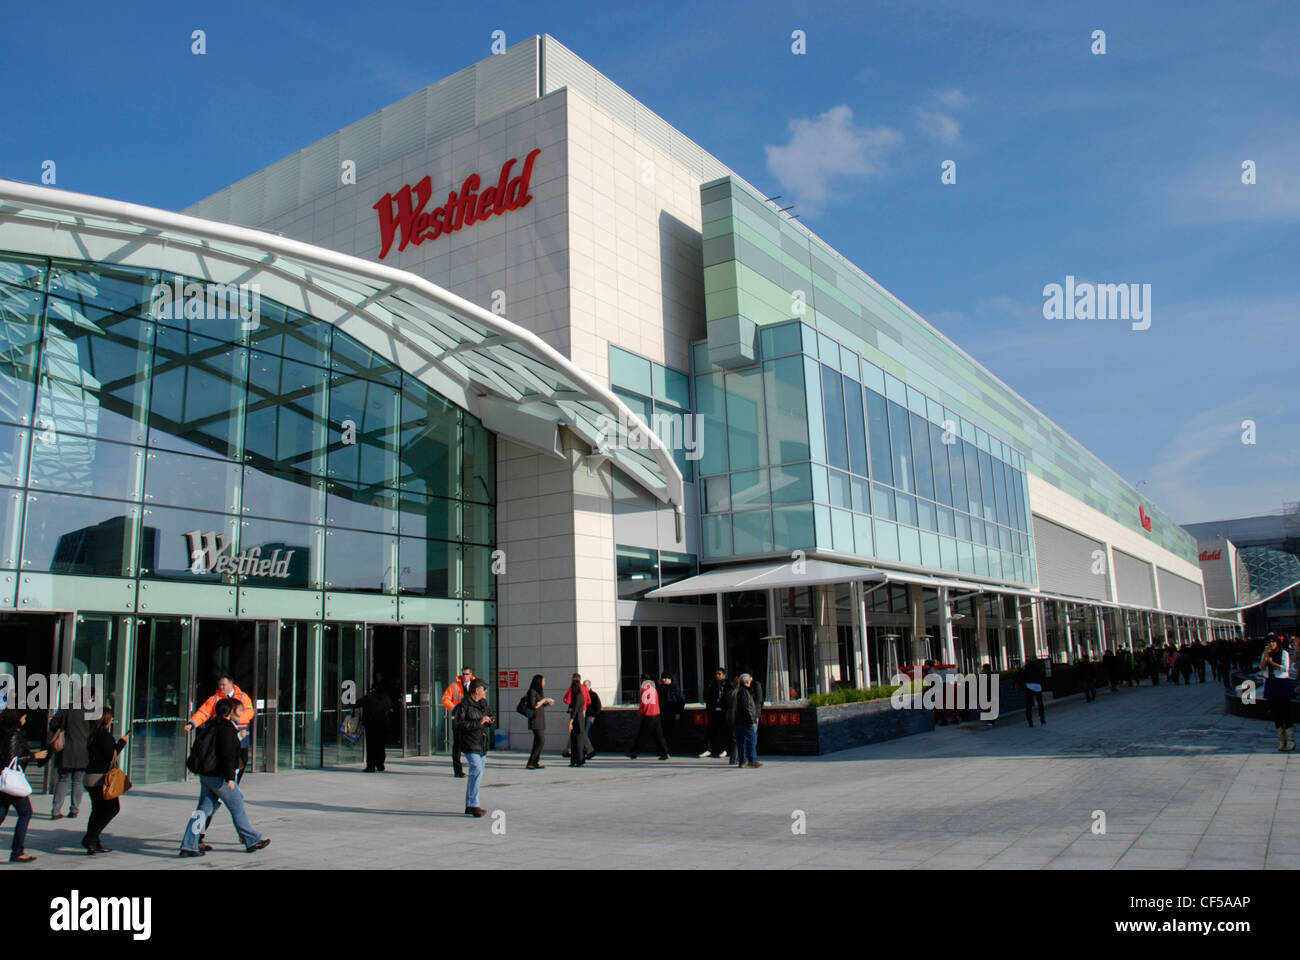 Visitors outside the Westfield Shopping Centre in Shepherds Bush. - Stock Image